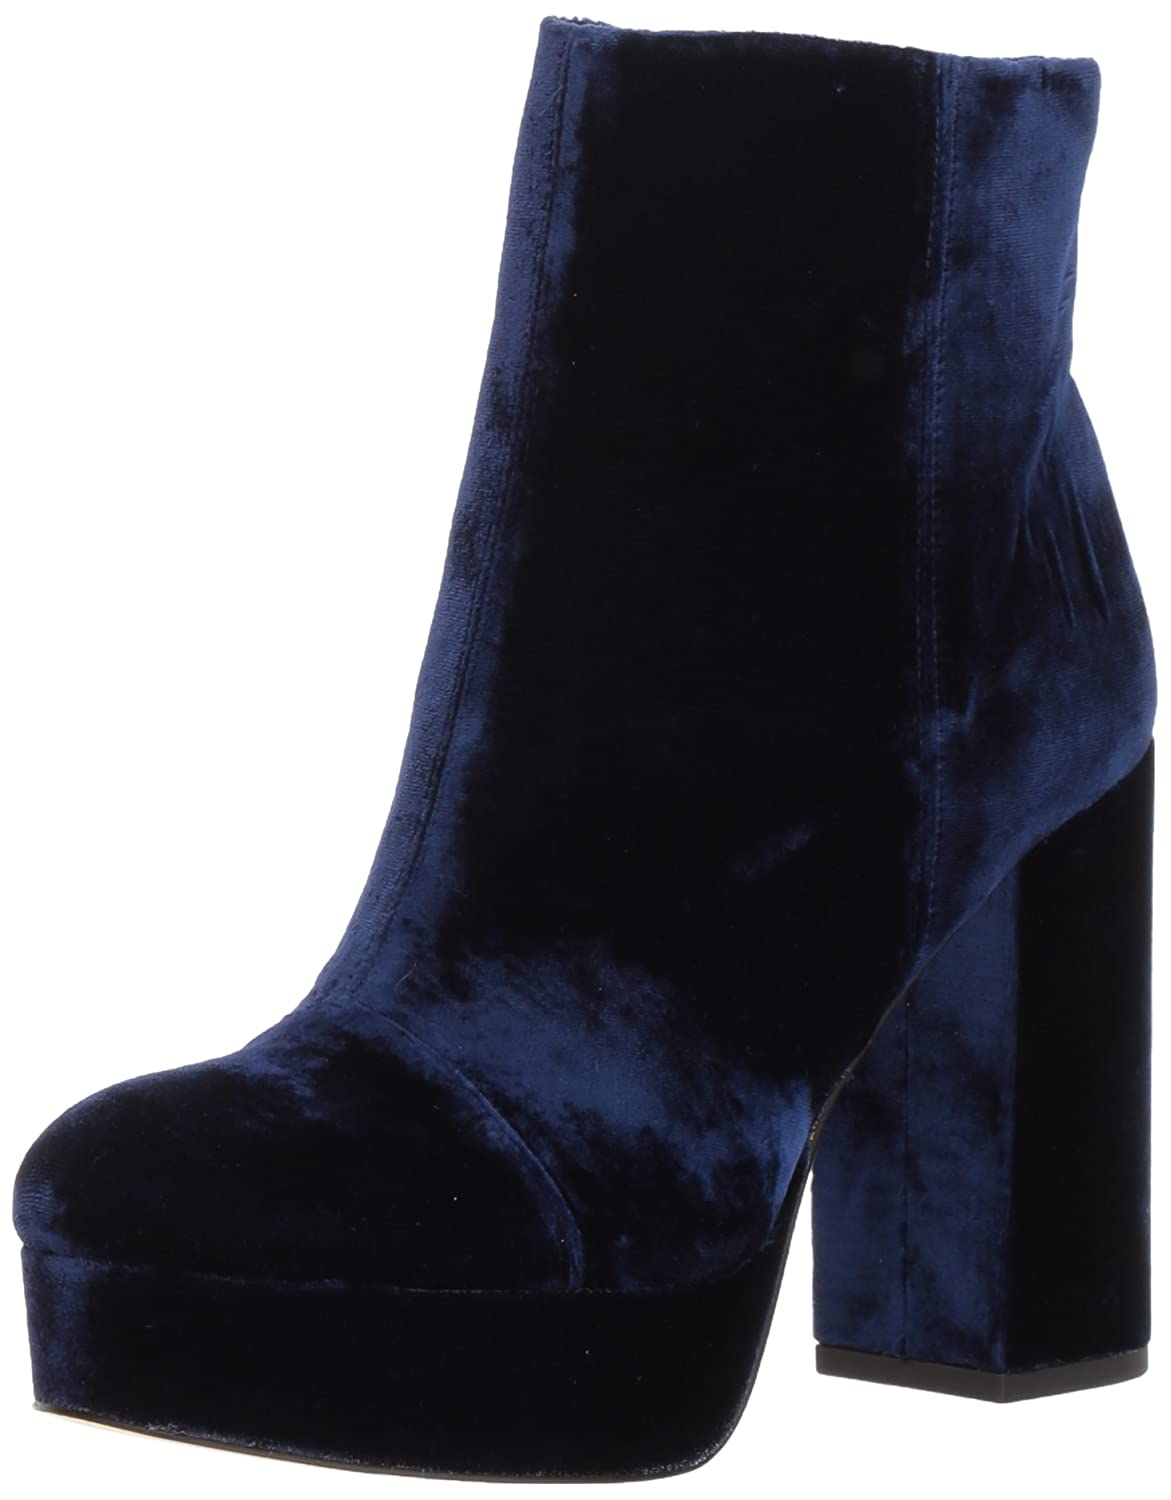 Sam Edelman Women's Azra Fashion Boot B071DHDX3R 7.5 B(M) US|Poseidon Blue Velvet